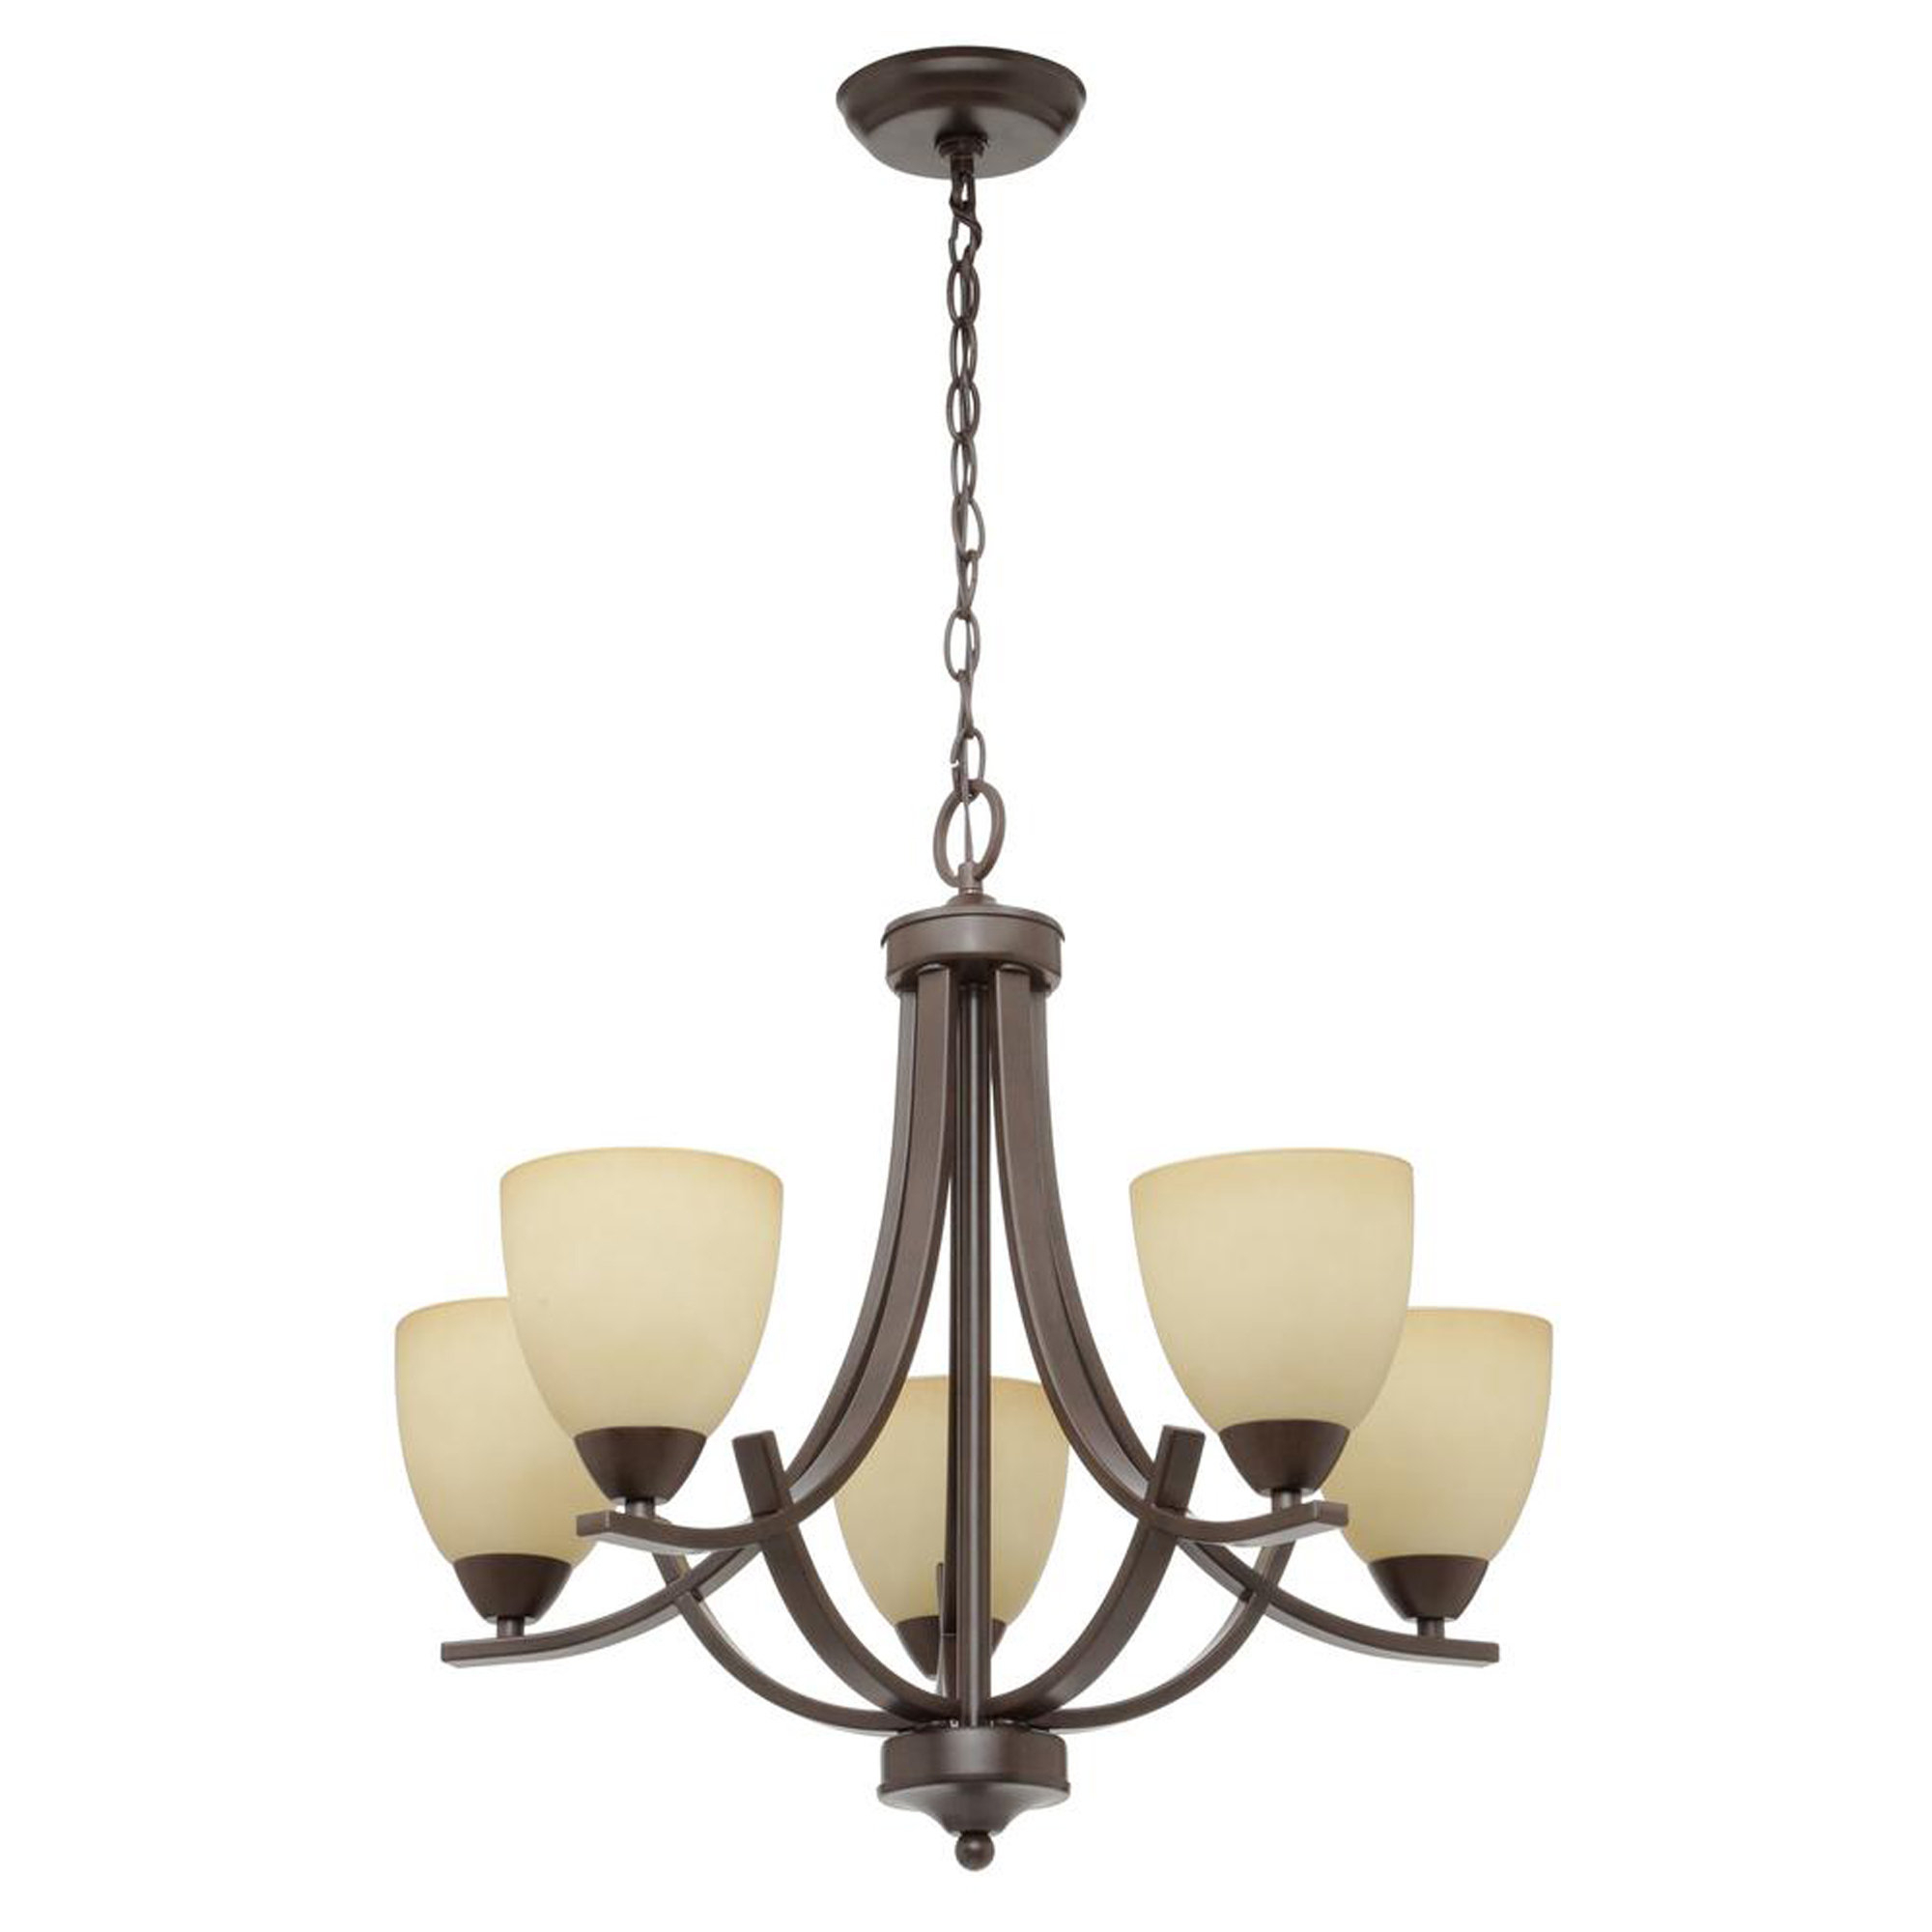 Hayden 5 Light Shaded Chandeliers In 2020 Crofoot 5 Light Shaded Chandelier (View 6 of 20)